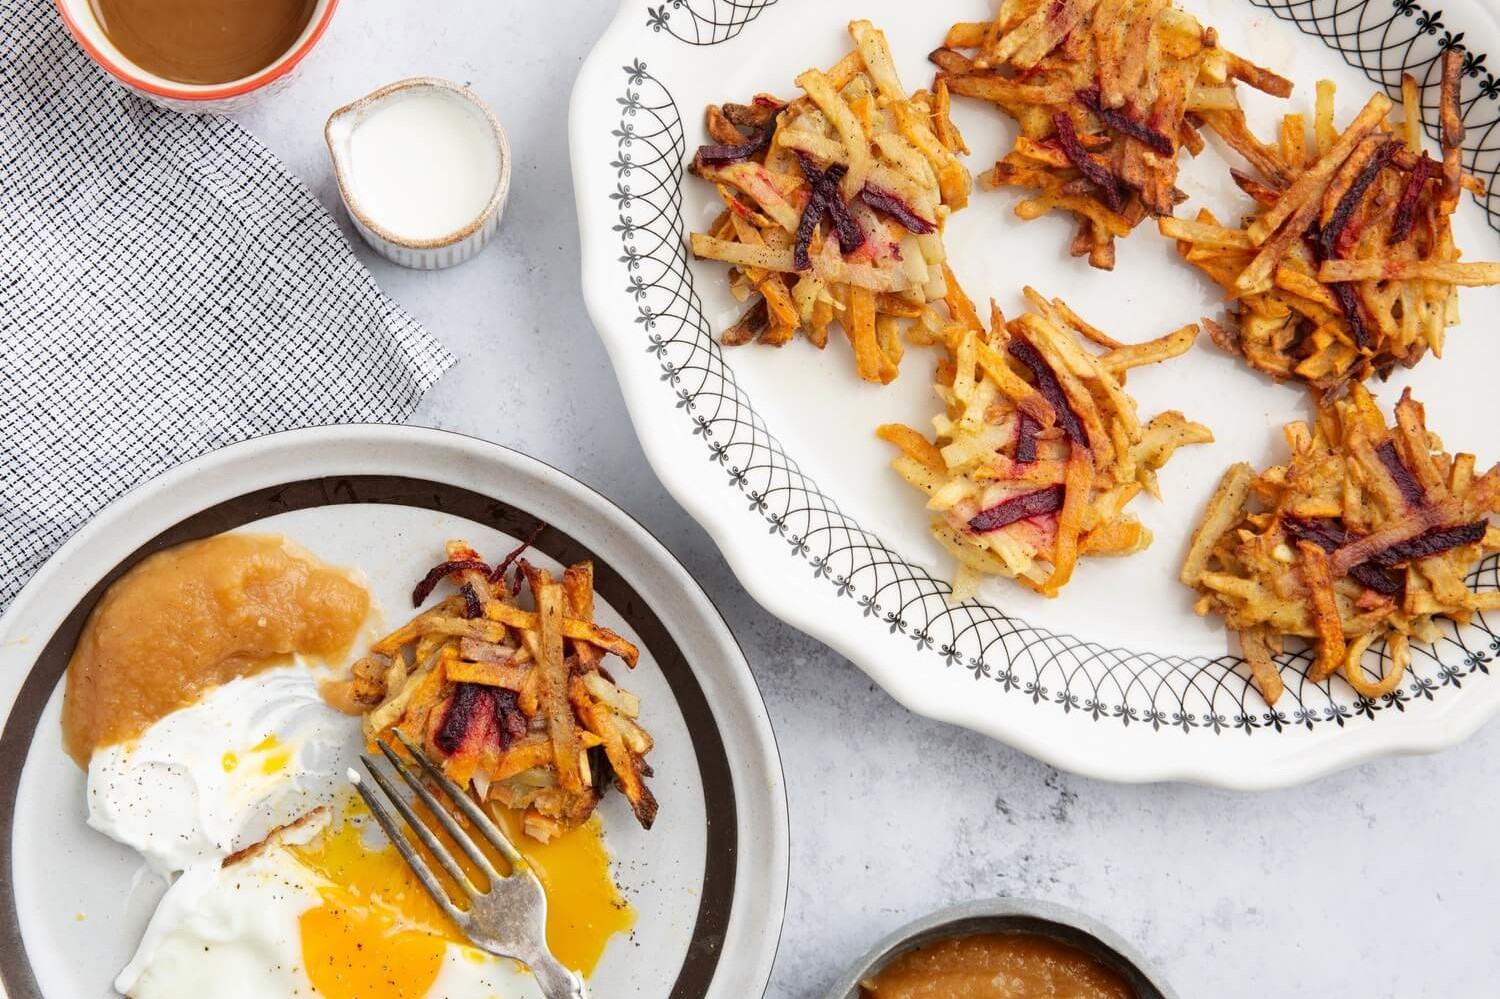 These root vegetable pancakes feature your favorite root vegetables, shredded, and mixed with flour, onion, and an organic egg. Serve with fried eggs or ketchup. | peteandgerrys.com